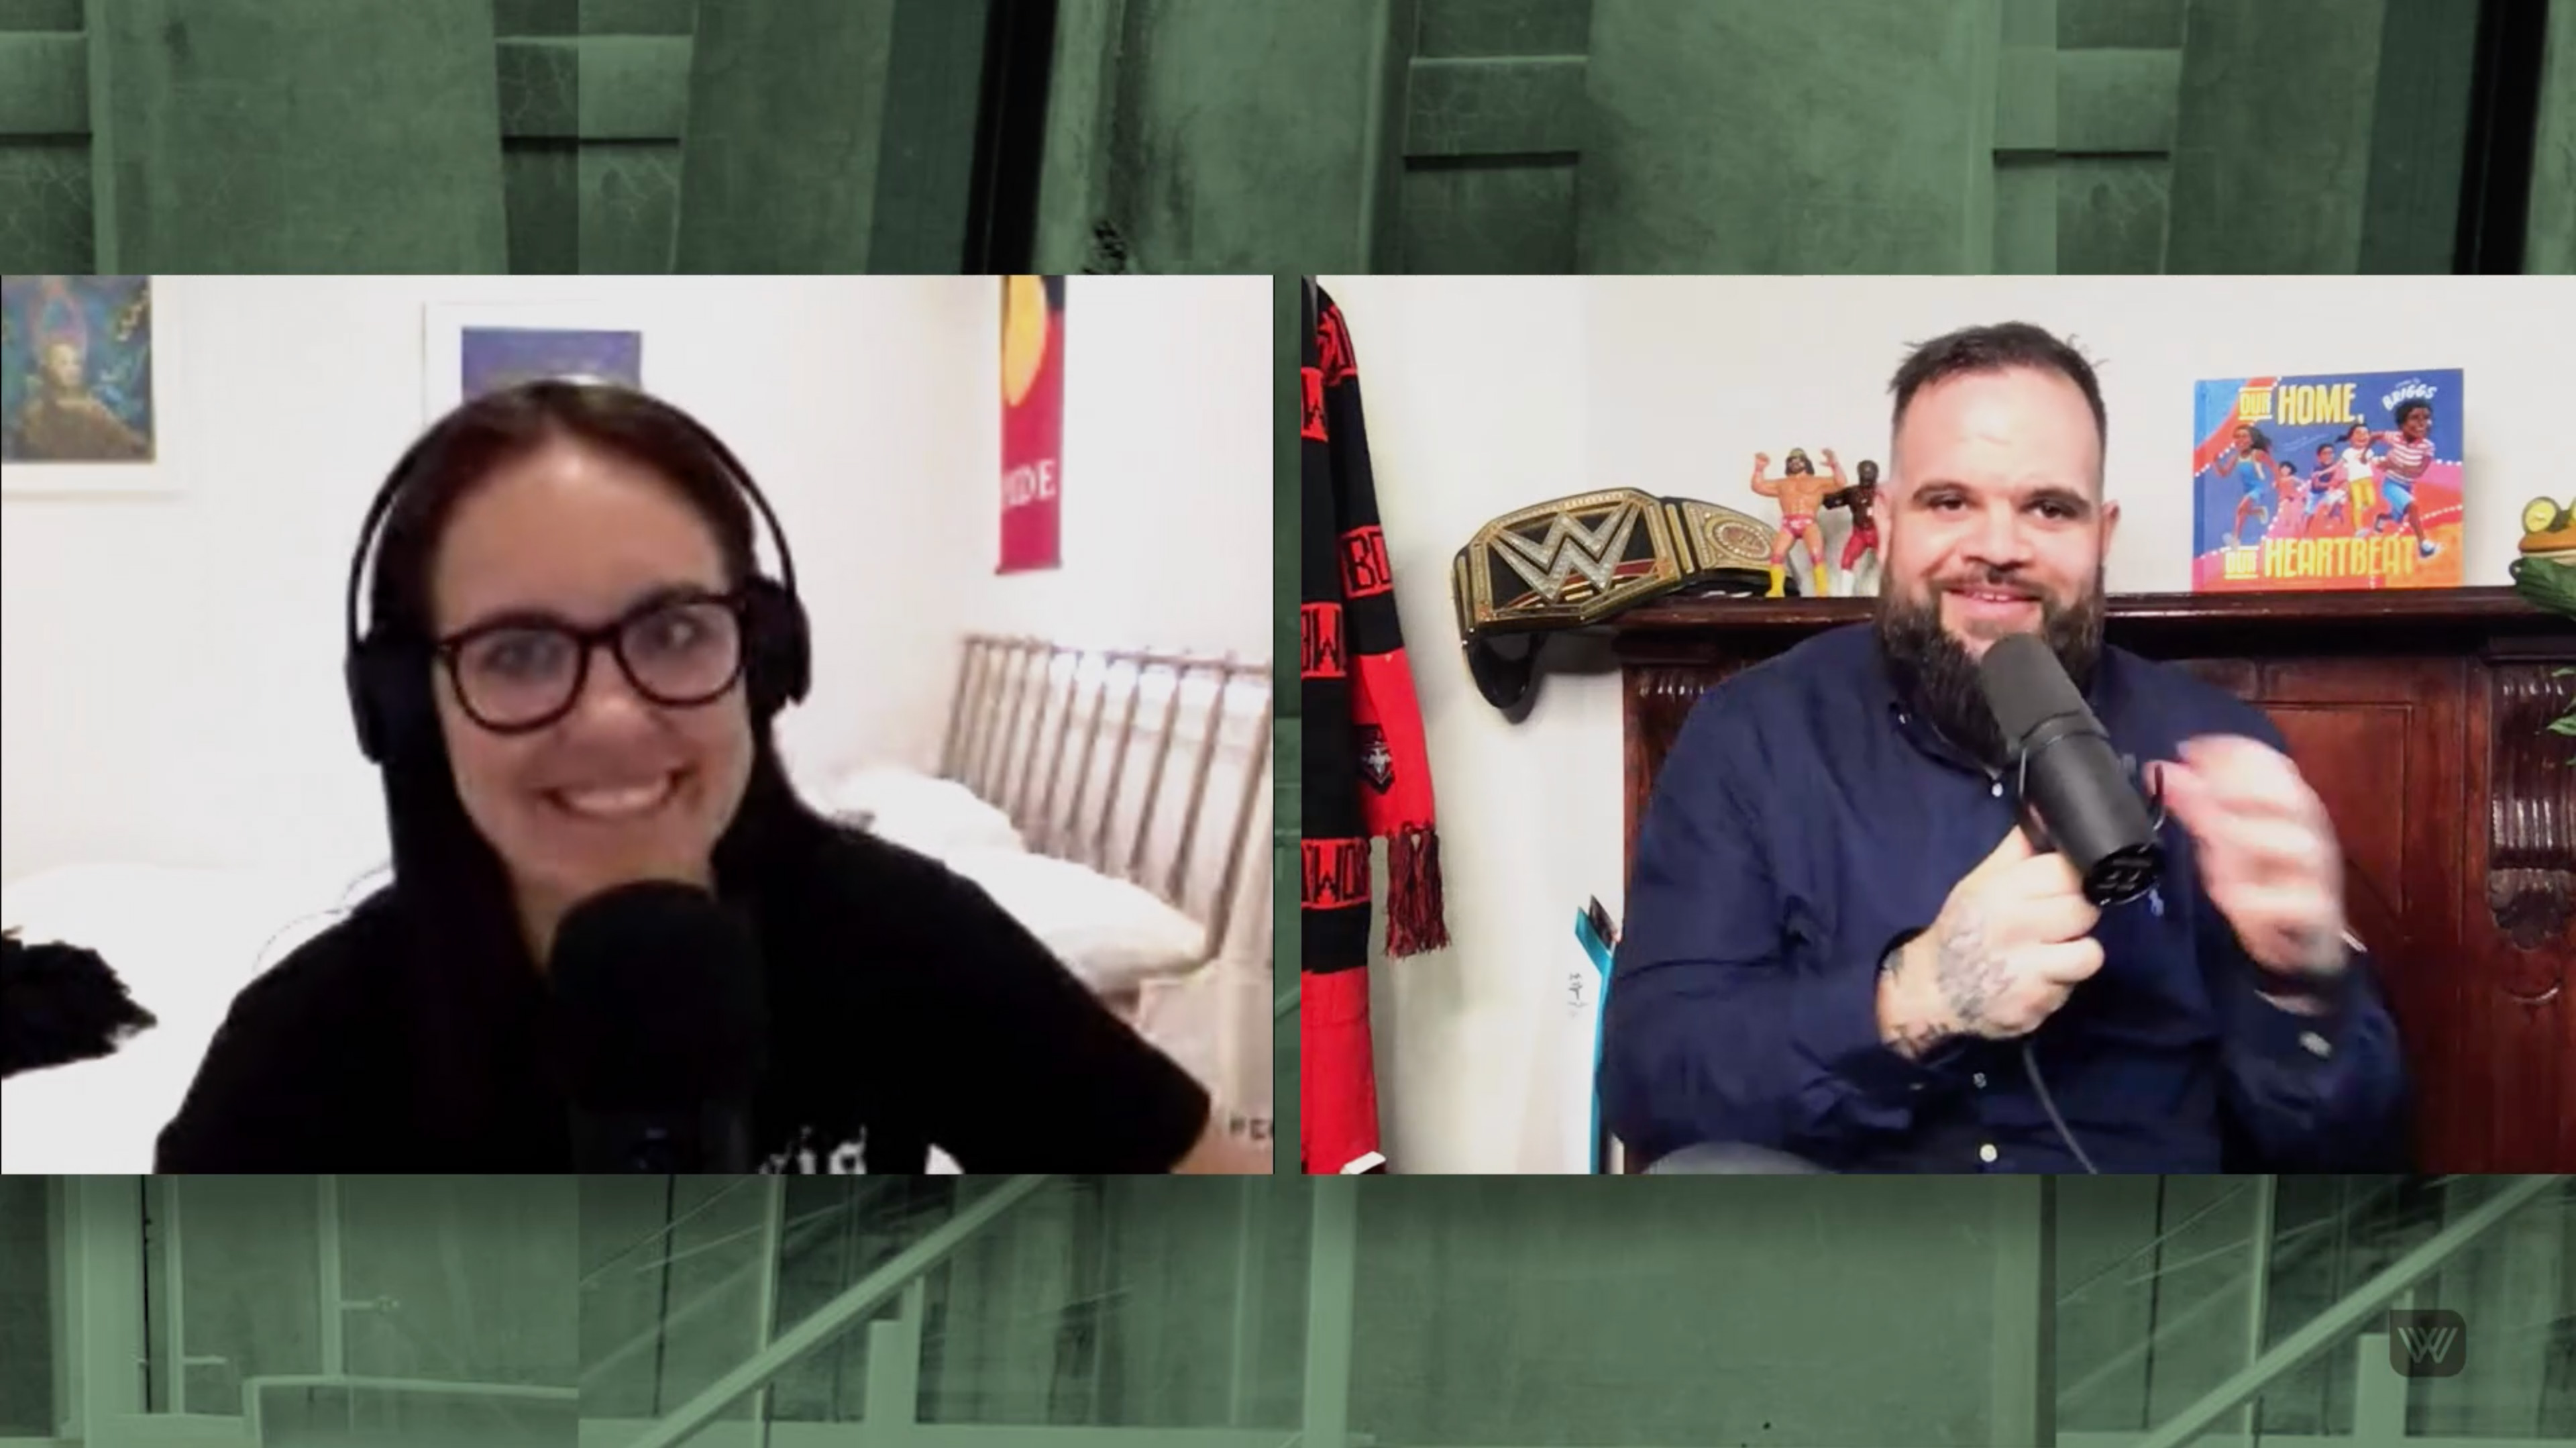 Screenshot of Marlee Silva, on the left, in her bedroom wearing headphones and glasses, speaking into a microphone - and Adam Briggs, on the right, in front of a cabinet with his book, a wrestling belt, an Essendon Bombers scarf and figurines, holding a microphone to his mouth and smiling